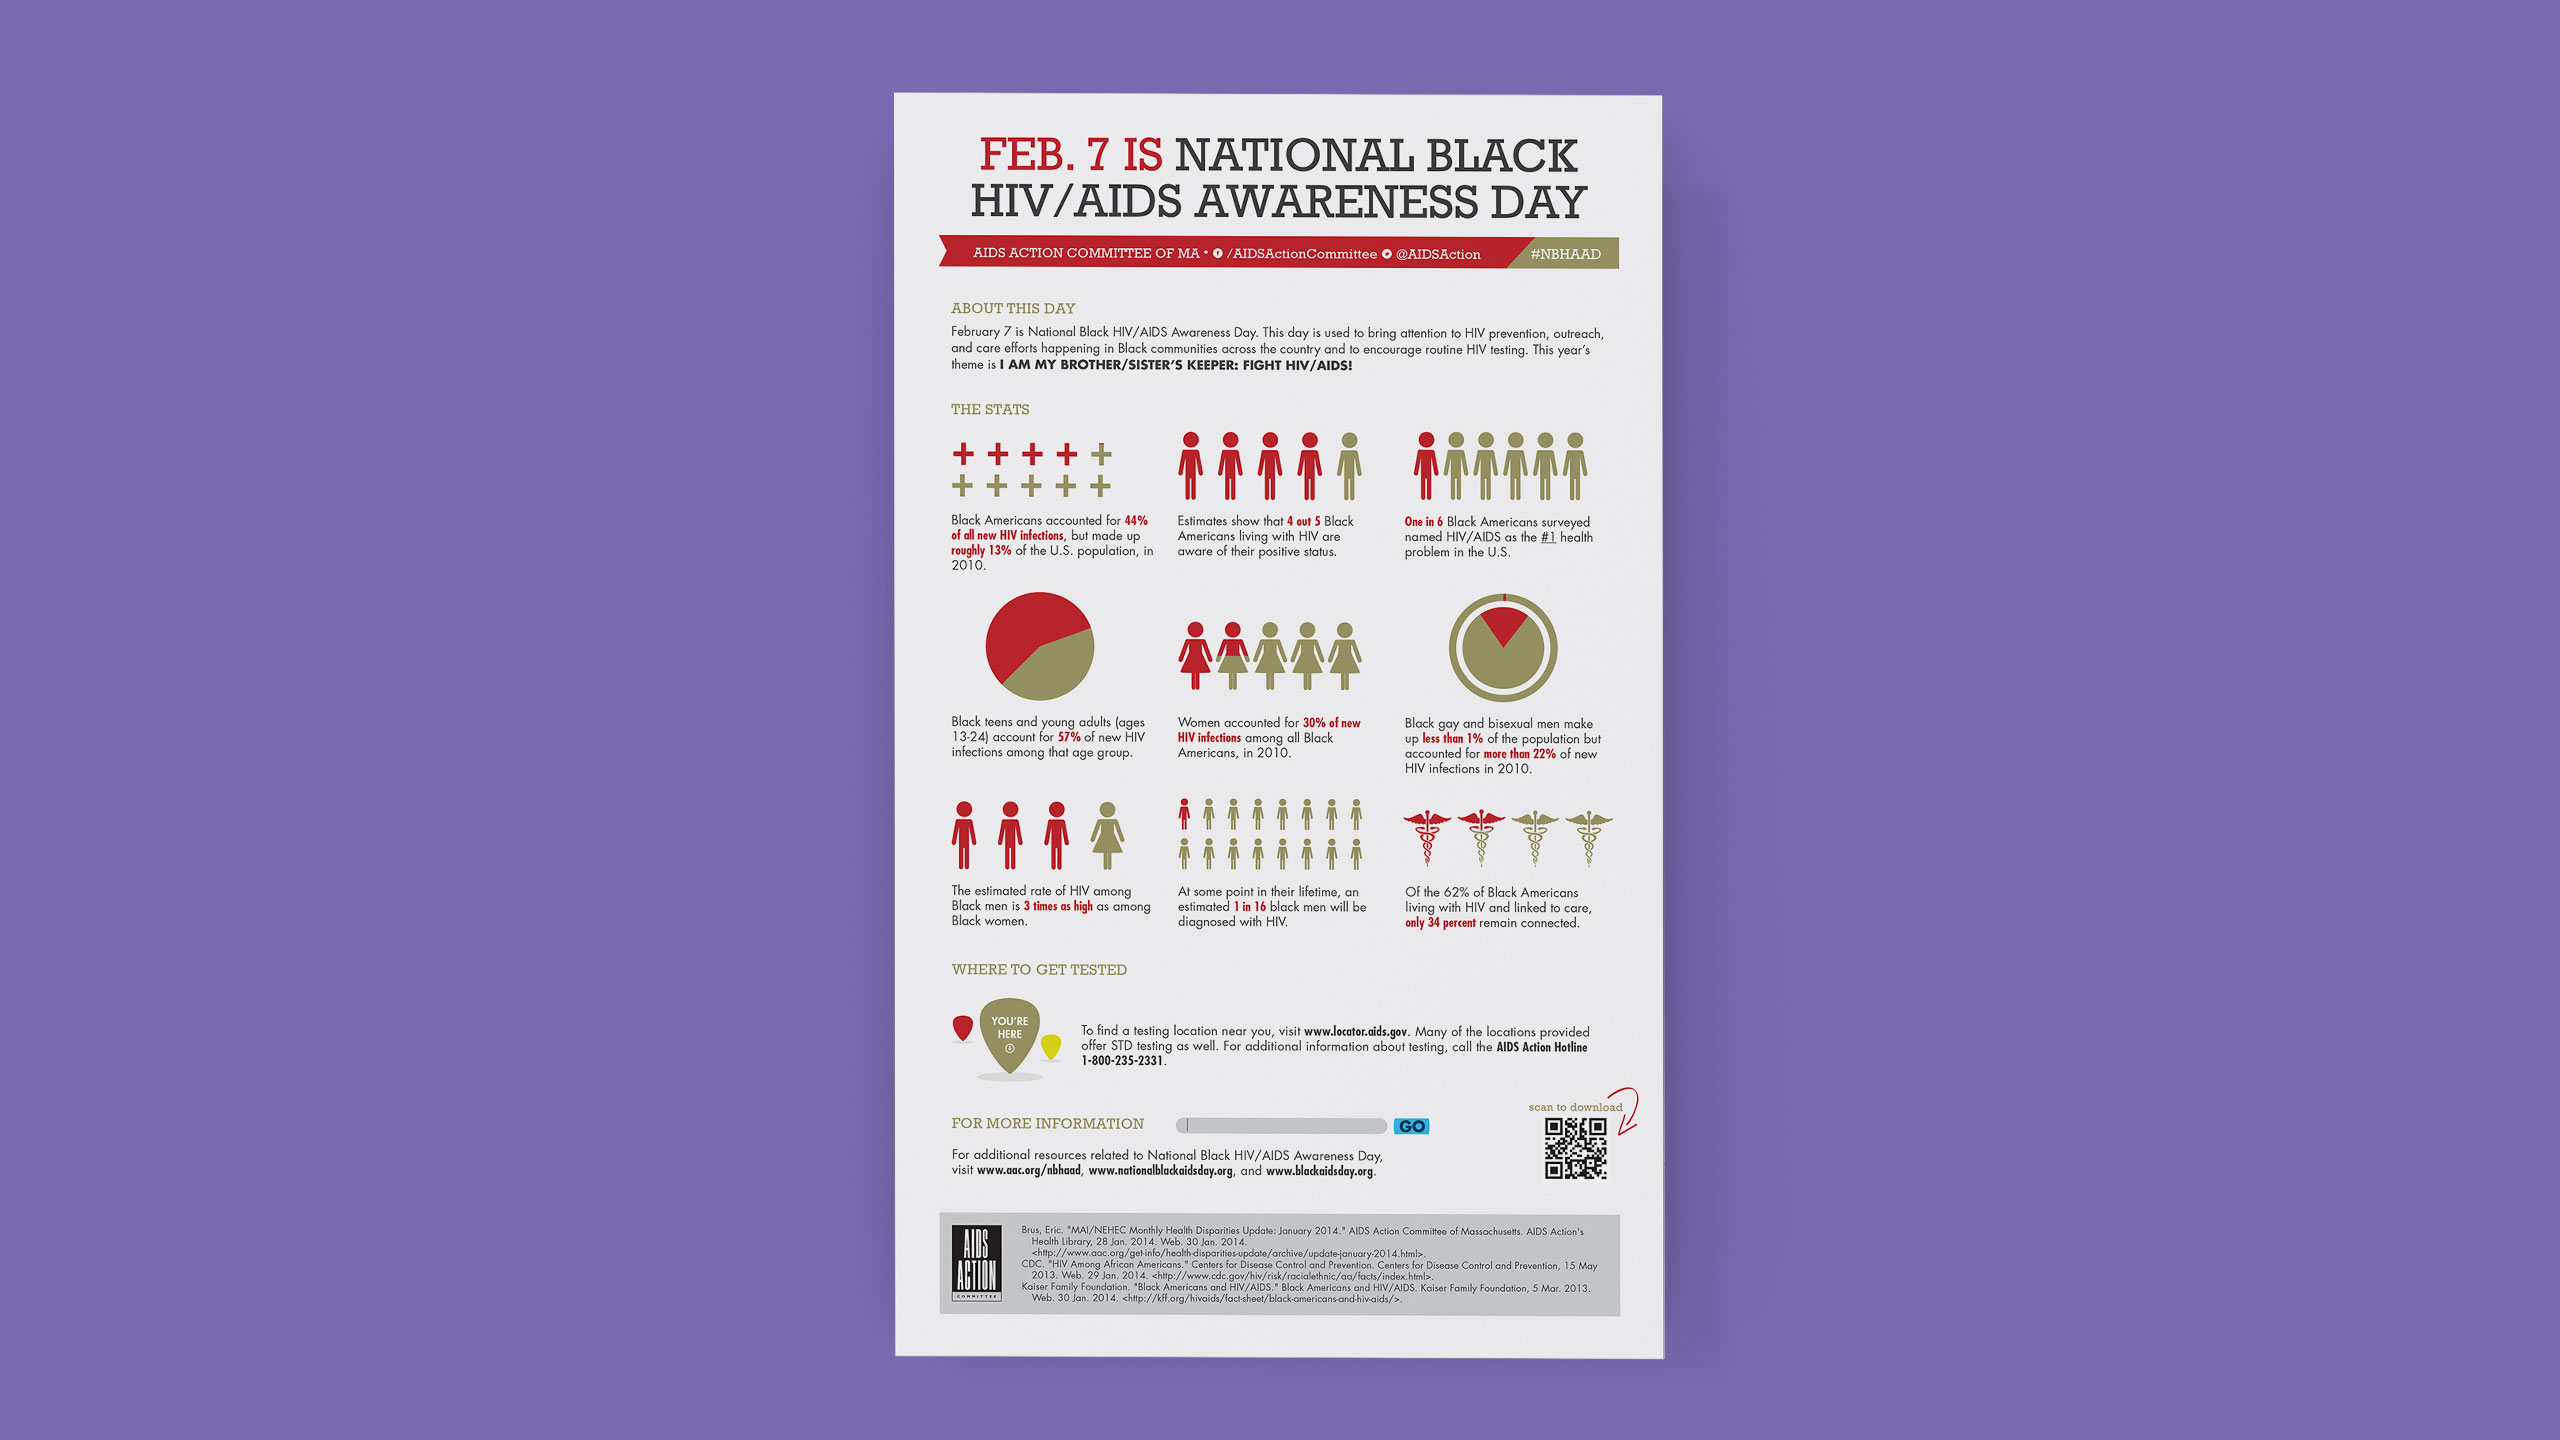 National Black HIV/AIDS Awareness Day Infographic